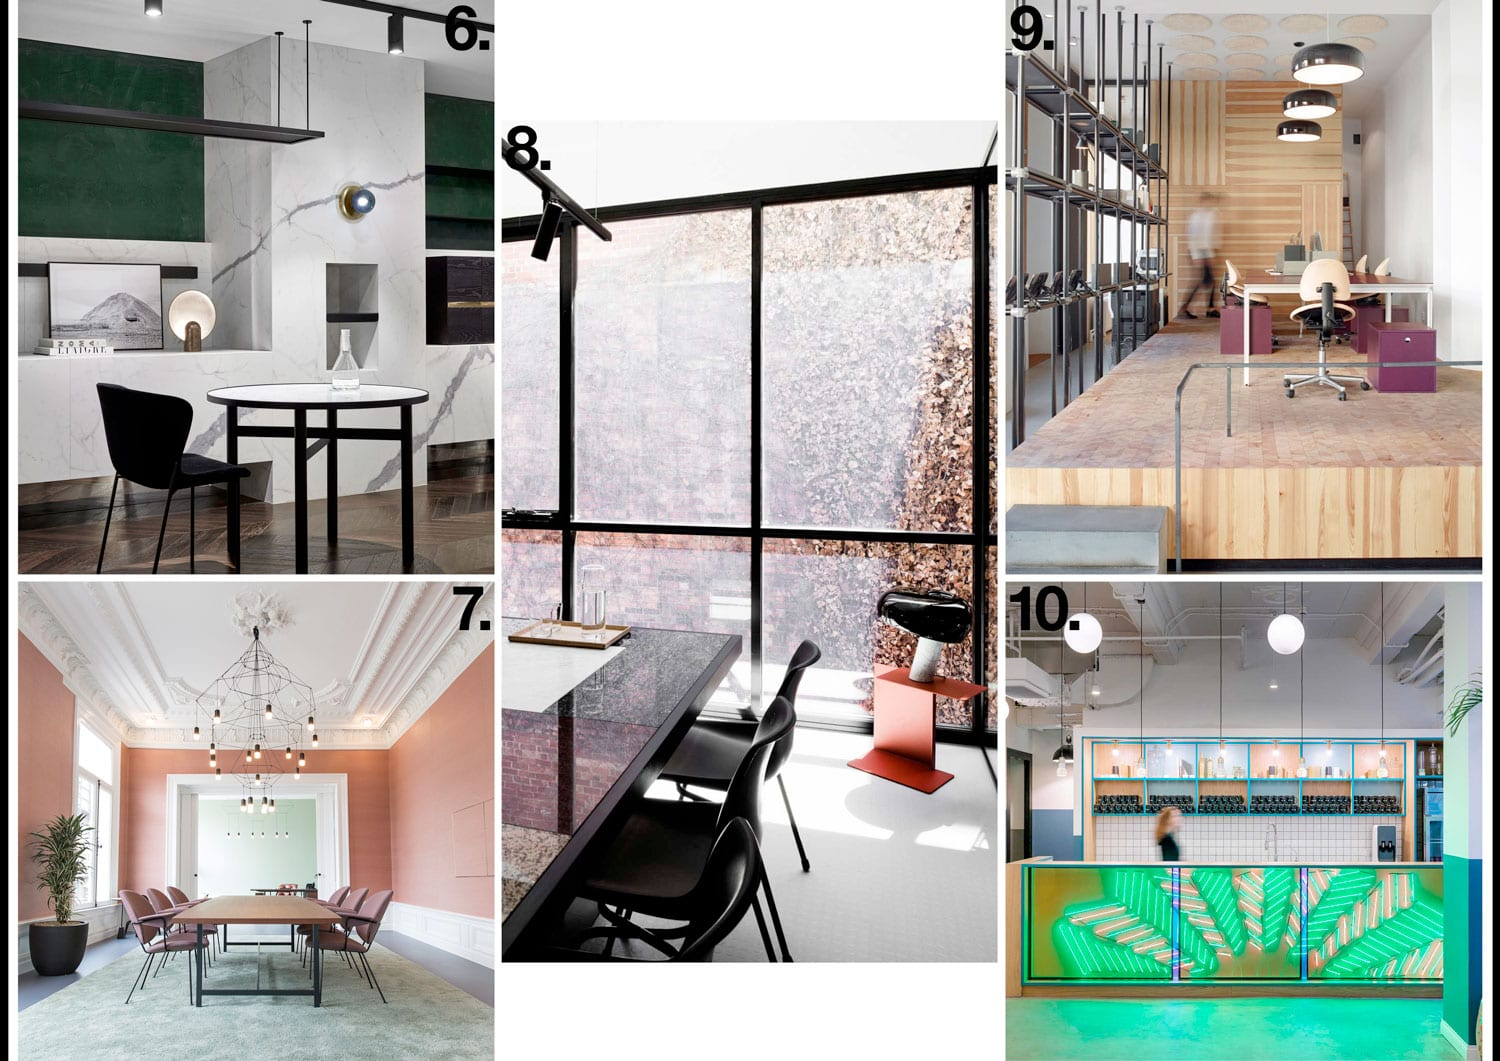 Workplace Interiors Archive 2017 | Yellowtrace